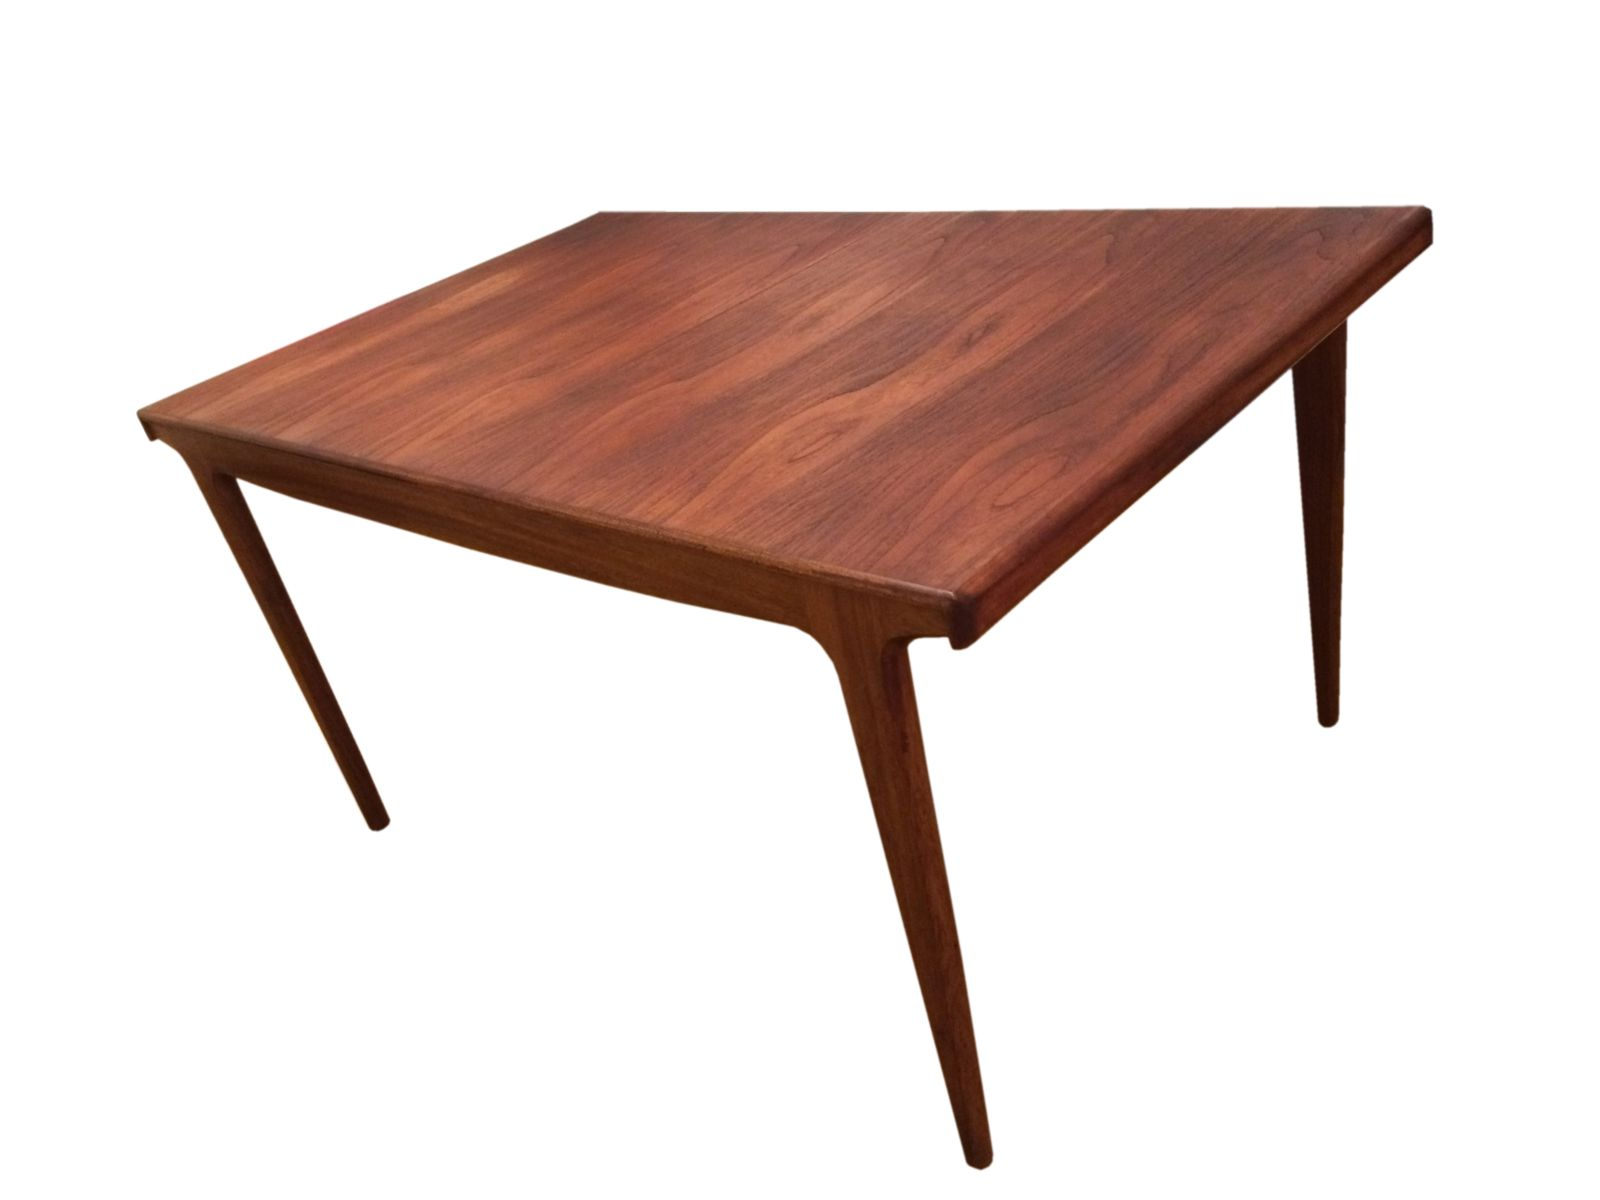 Table de salle manger 8 places mid century en teck par for Table de salle a manger 12 places